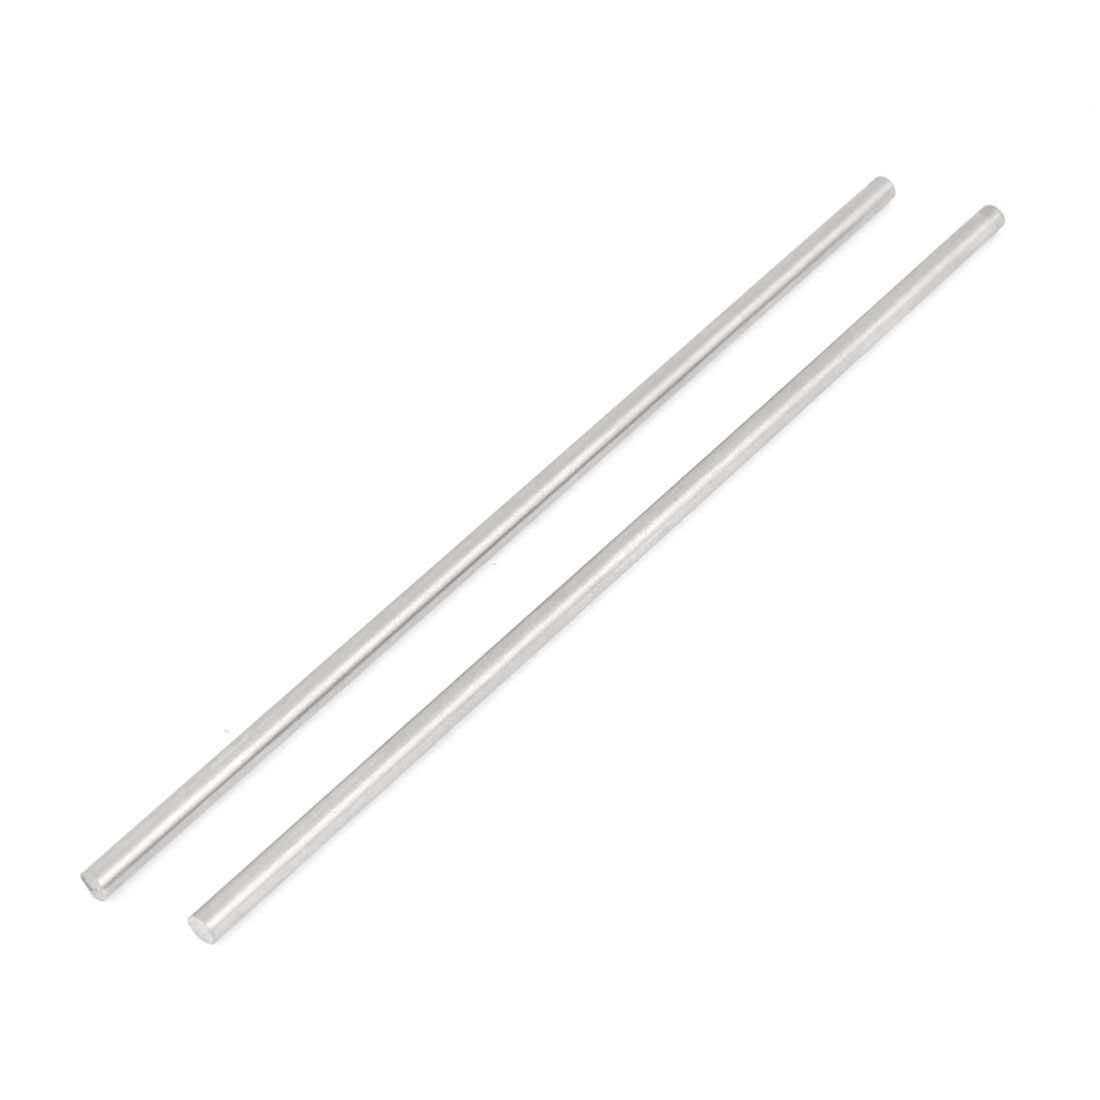 2.5mm x 100mm Graving Tool Round Turning Lathe Bars Silver Tone 2 Pcs